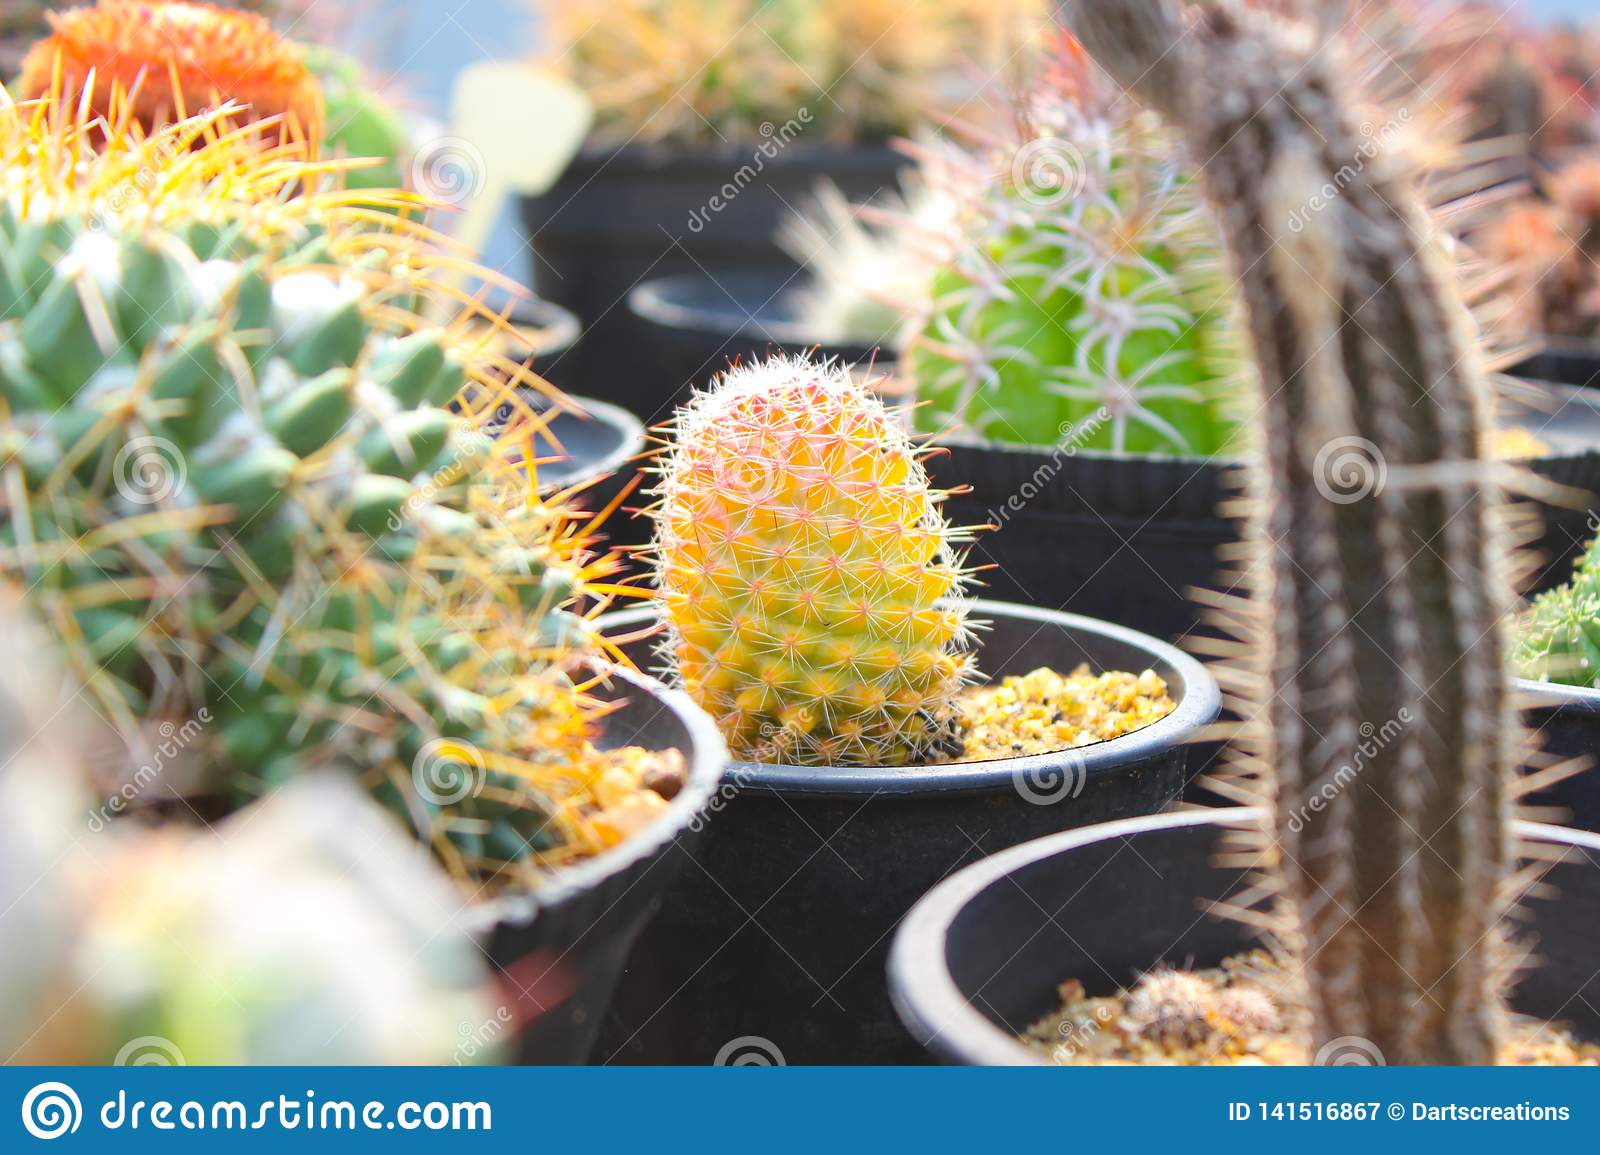 Colourful Cactus for gardening